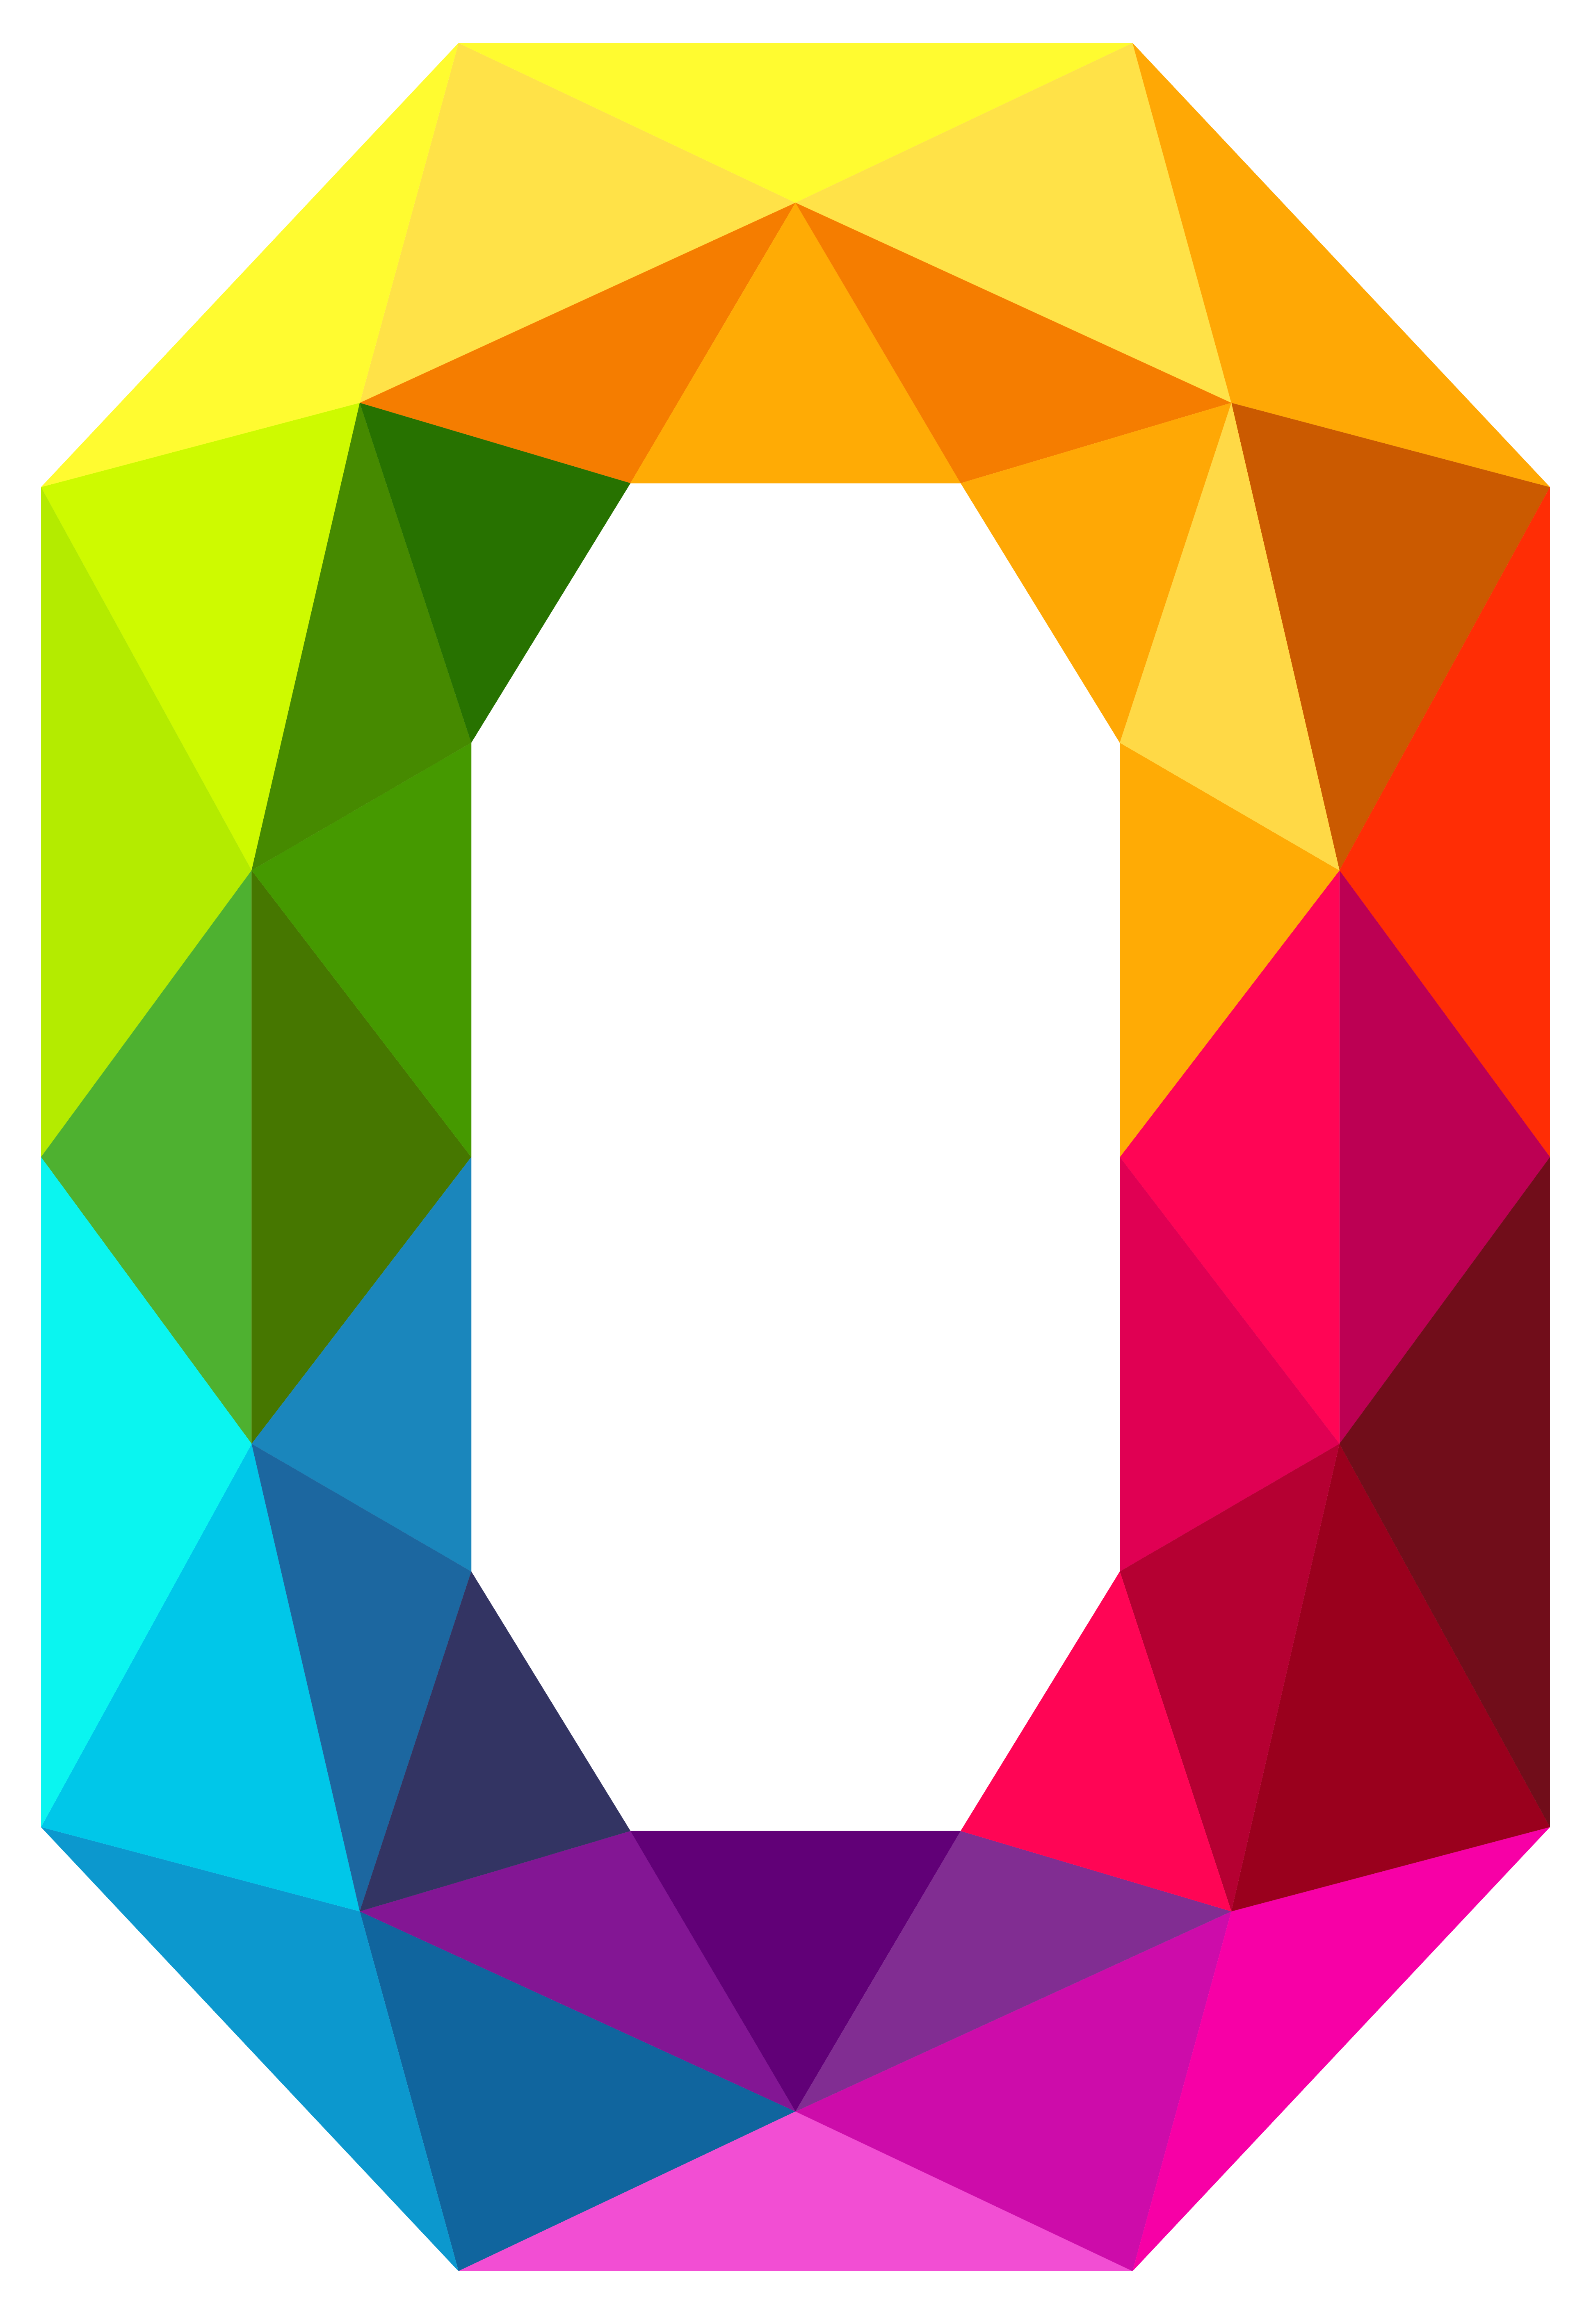 Colourful triangles number zero. Clipart umbrella triangular